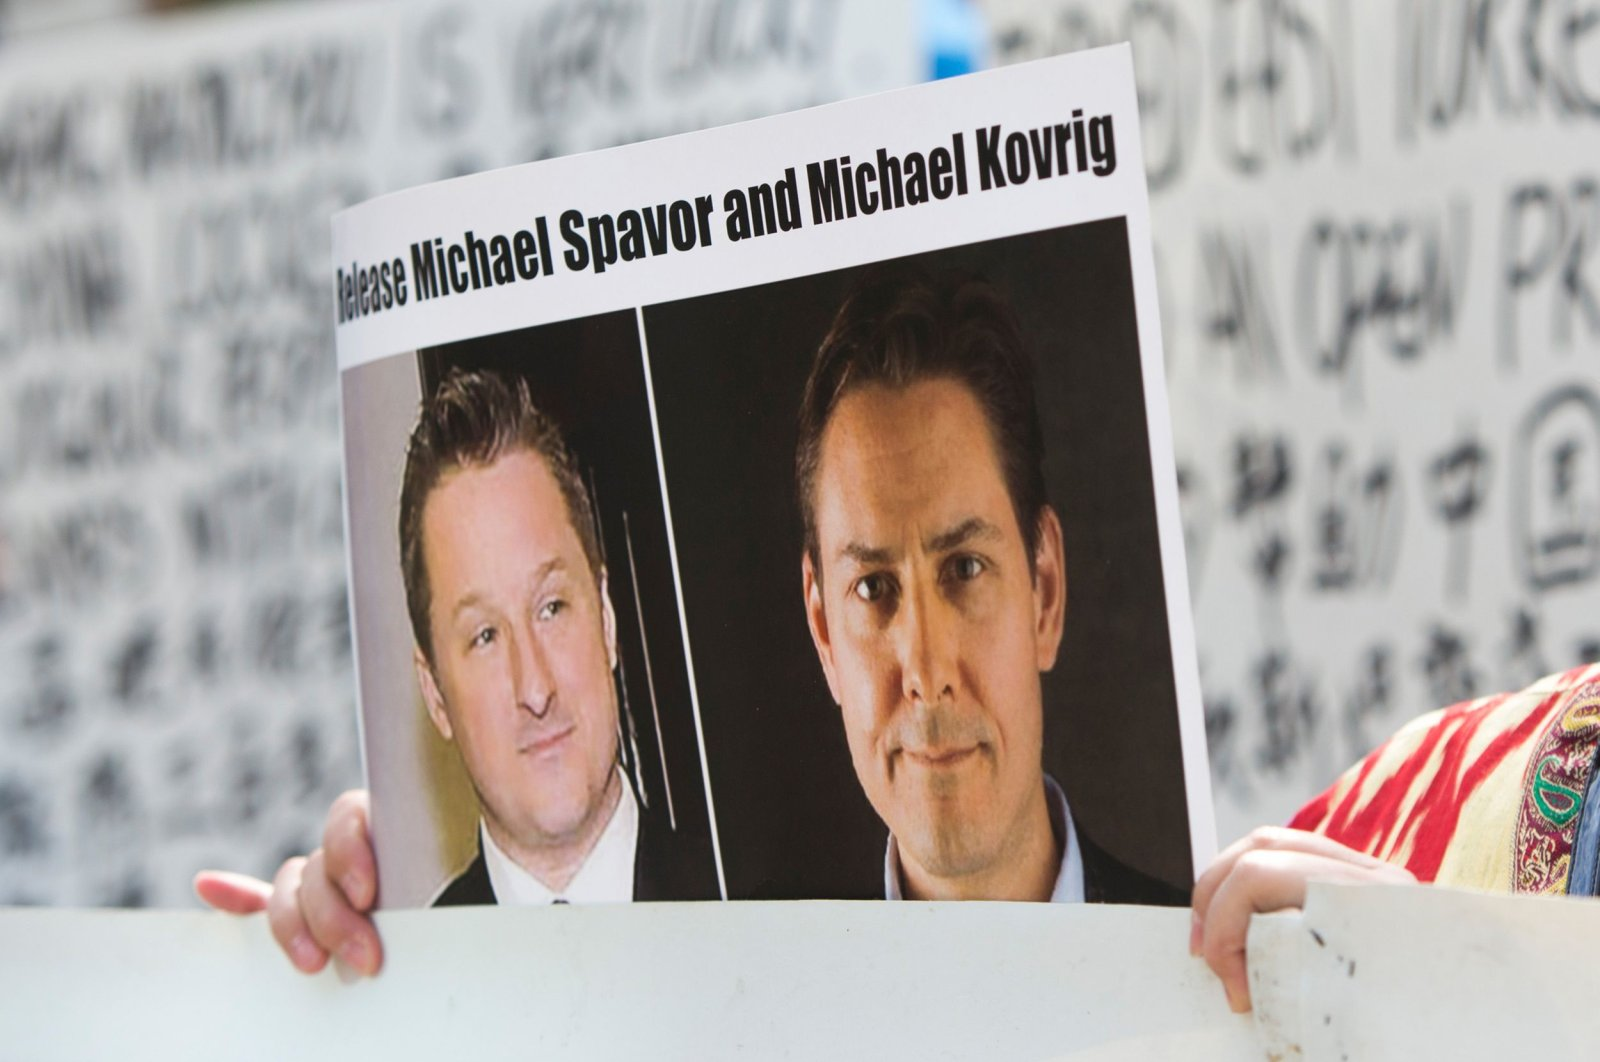 In this May 8, 2019, file photo, a protester holds up a placard depicting detained Canadians Michael Spavor, left, and Michael Kovrig outside a court during a hearing for Huawei Chief Financial Officer, Meng Wanzhou at the British Columbia Supreme Court in Vancouver, Canada. (AFP Photo)